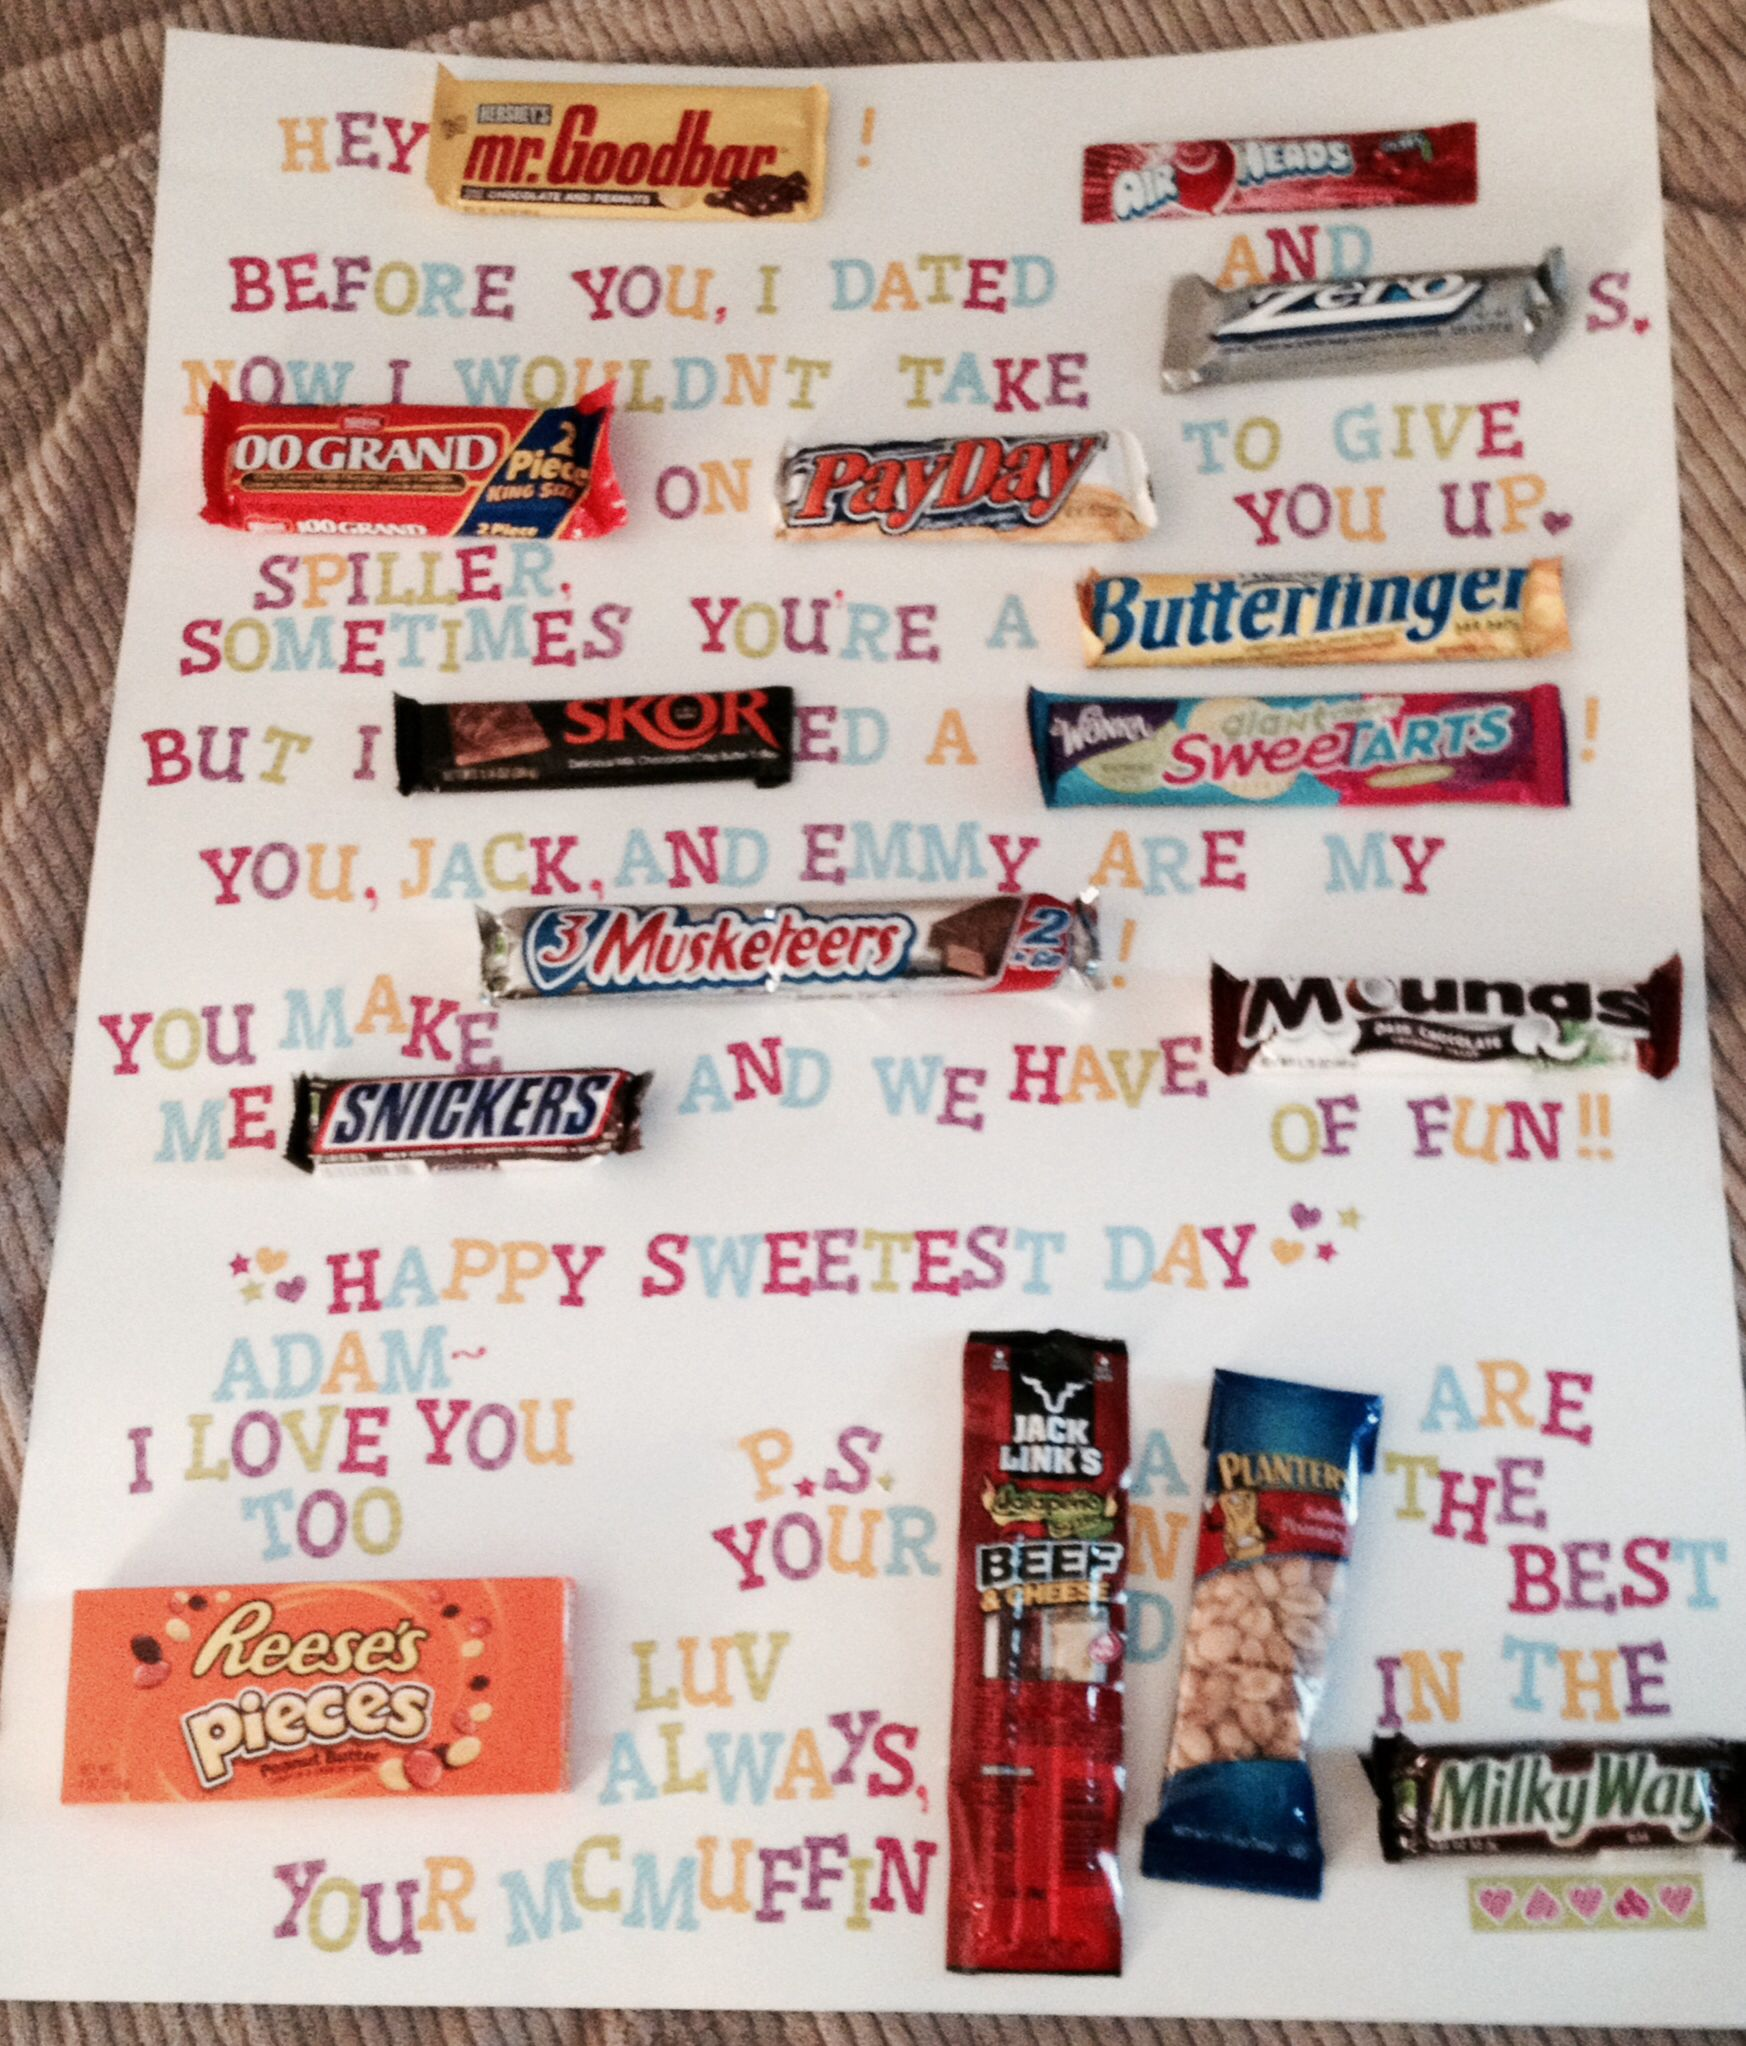 Pin by Ashley Falco on candy gram | Pinterest